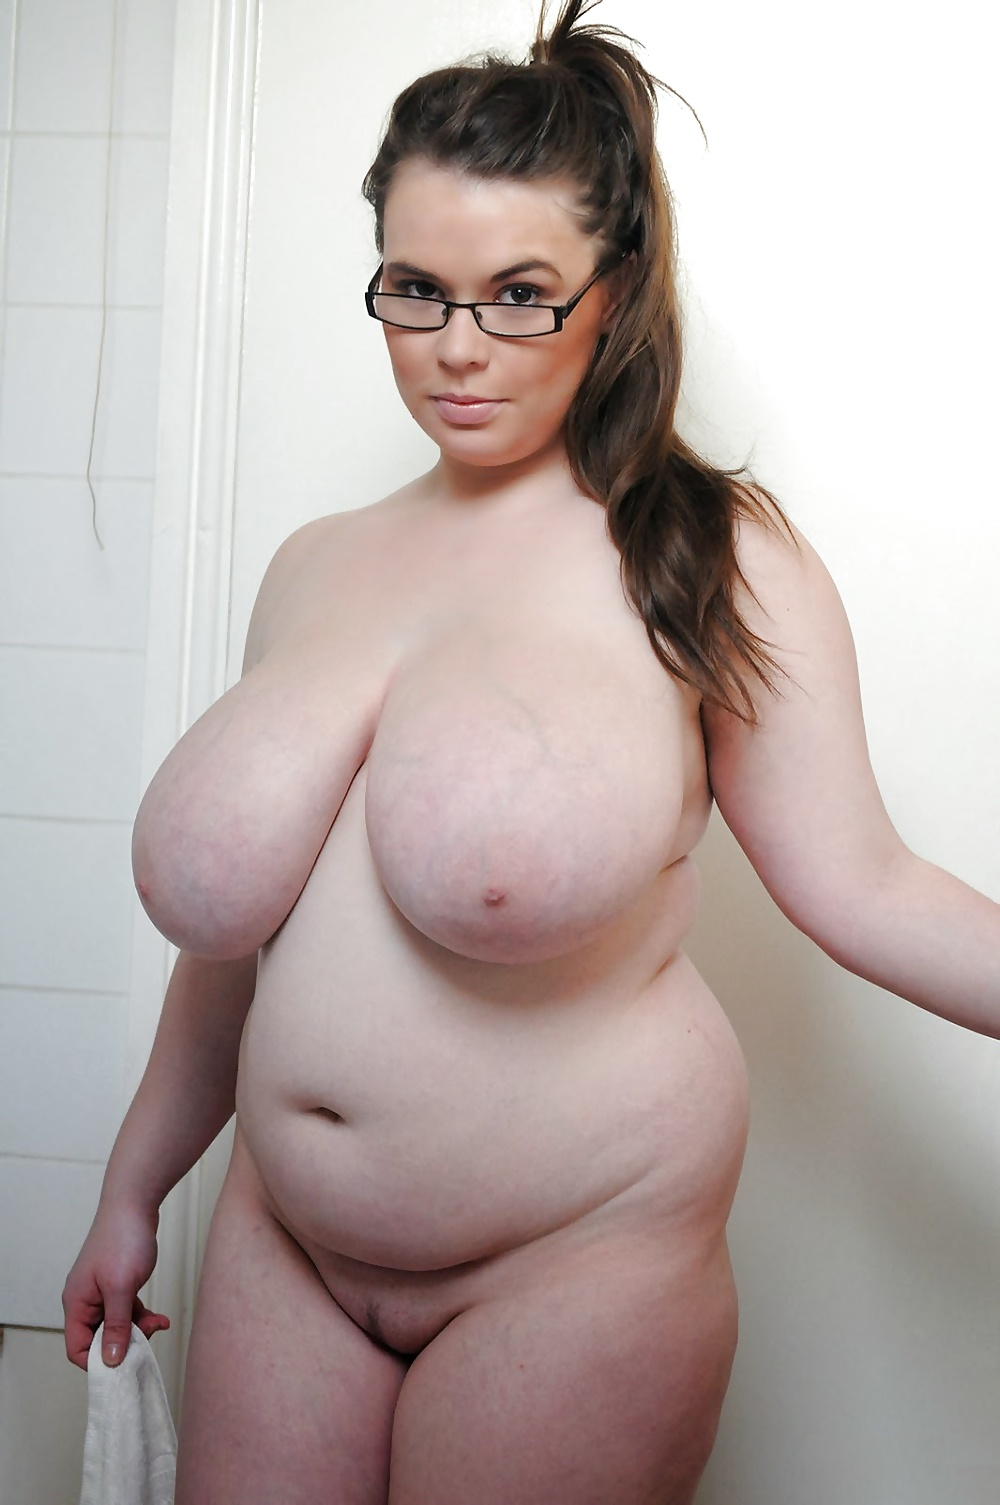 Naked chubby girls pictures #7